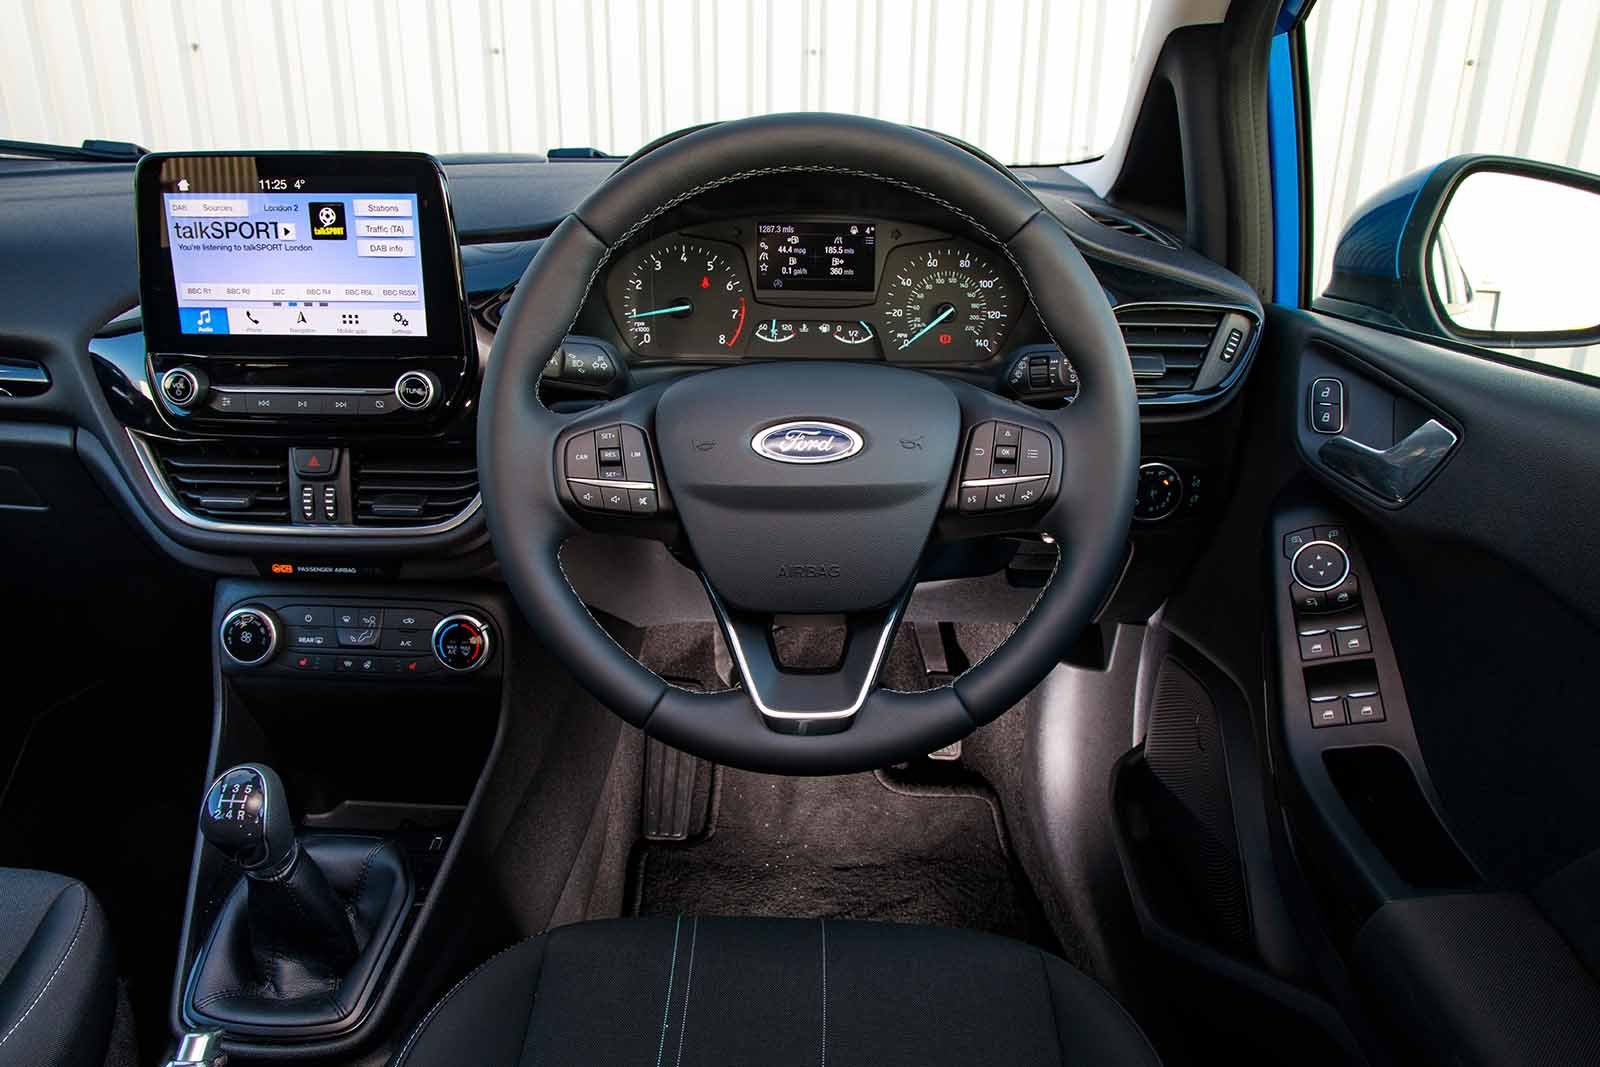 Ford Fiesta 2019 RHD dashboard